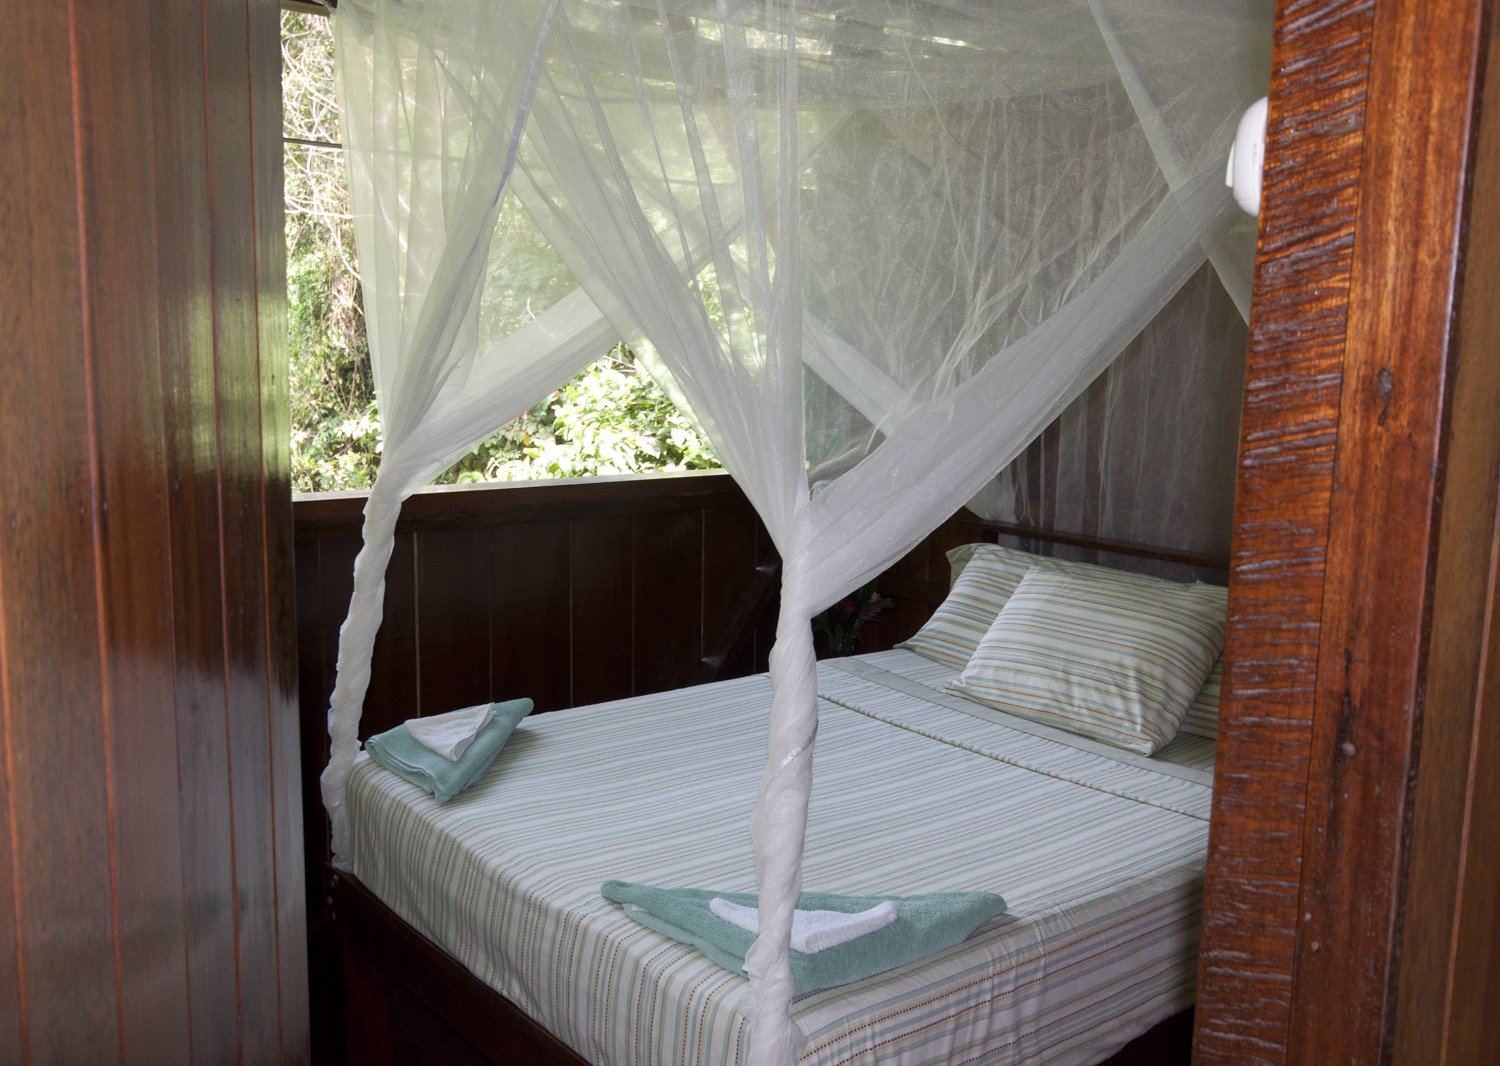 Our lodge uses fine fabrics and romantic netting for the beds